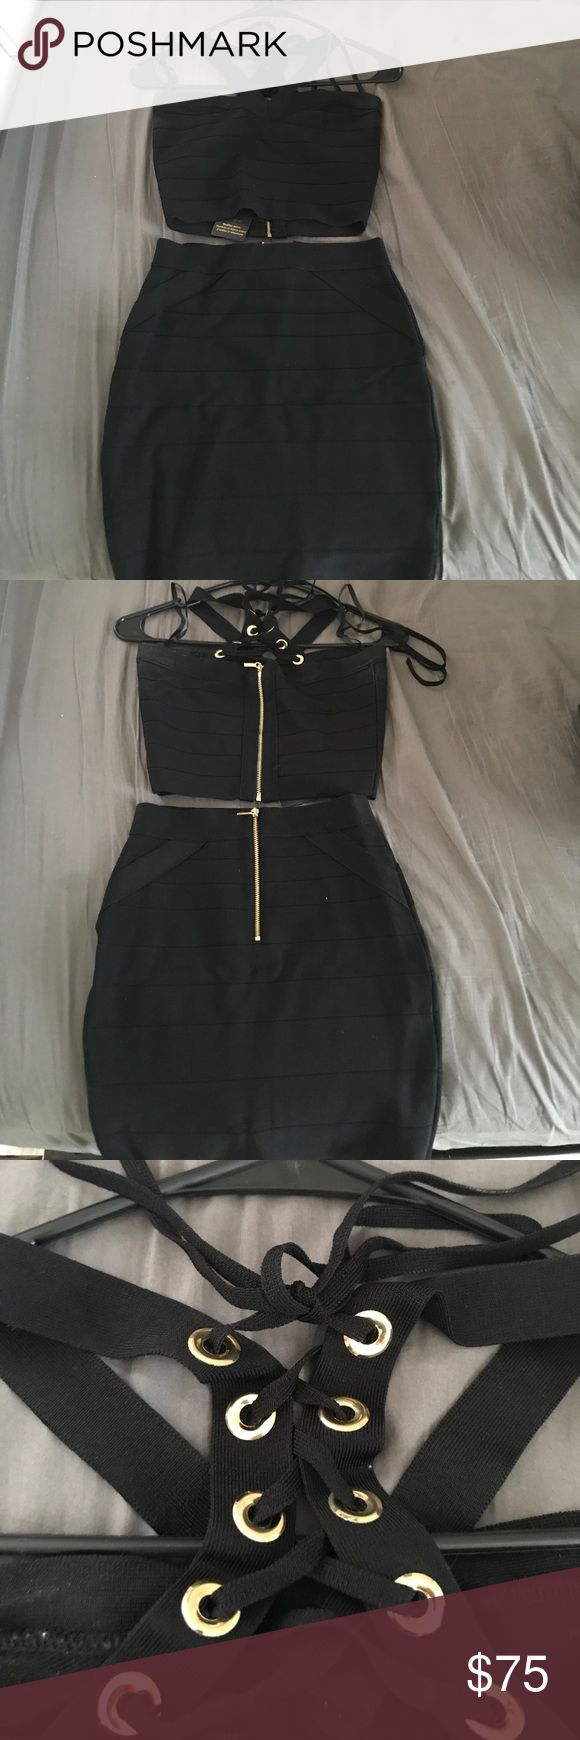 Black/ gold two piece outfit Black and gold two piece outfit... can buy together or separate, size Small bebe Other